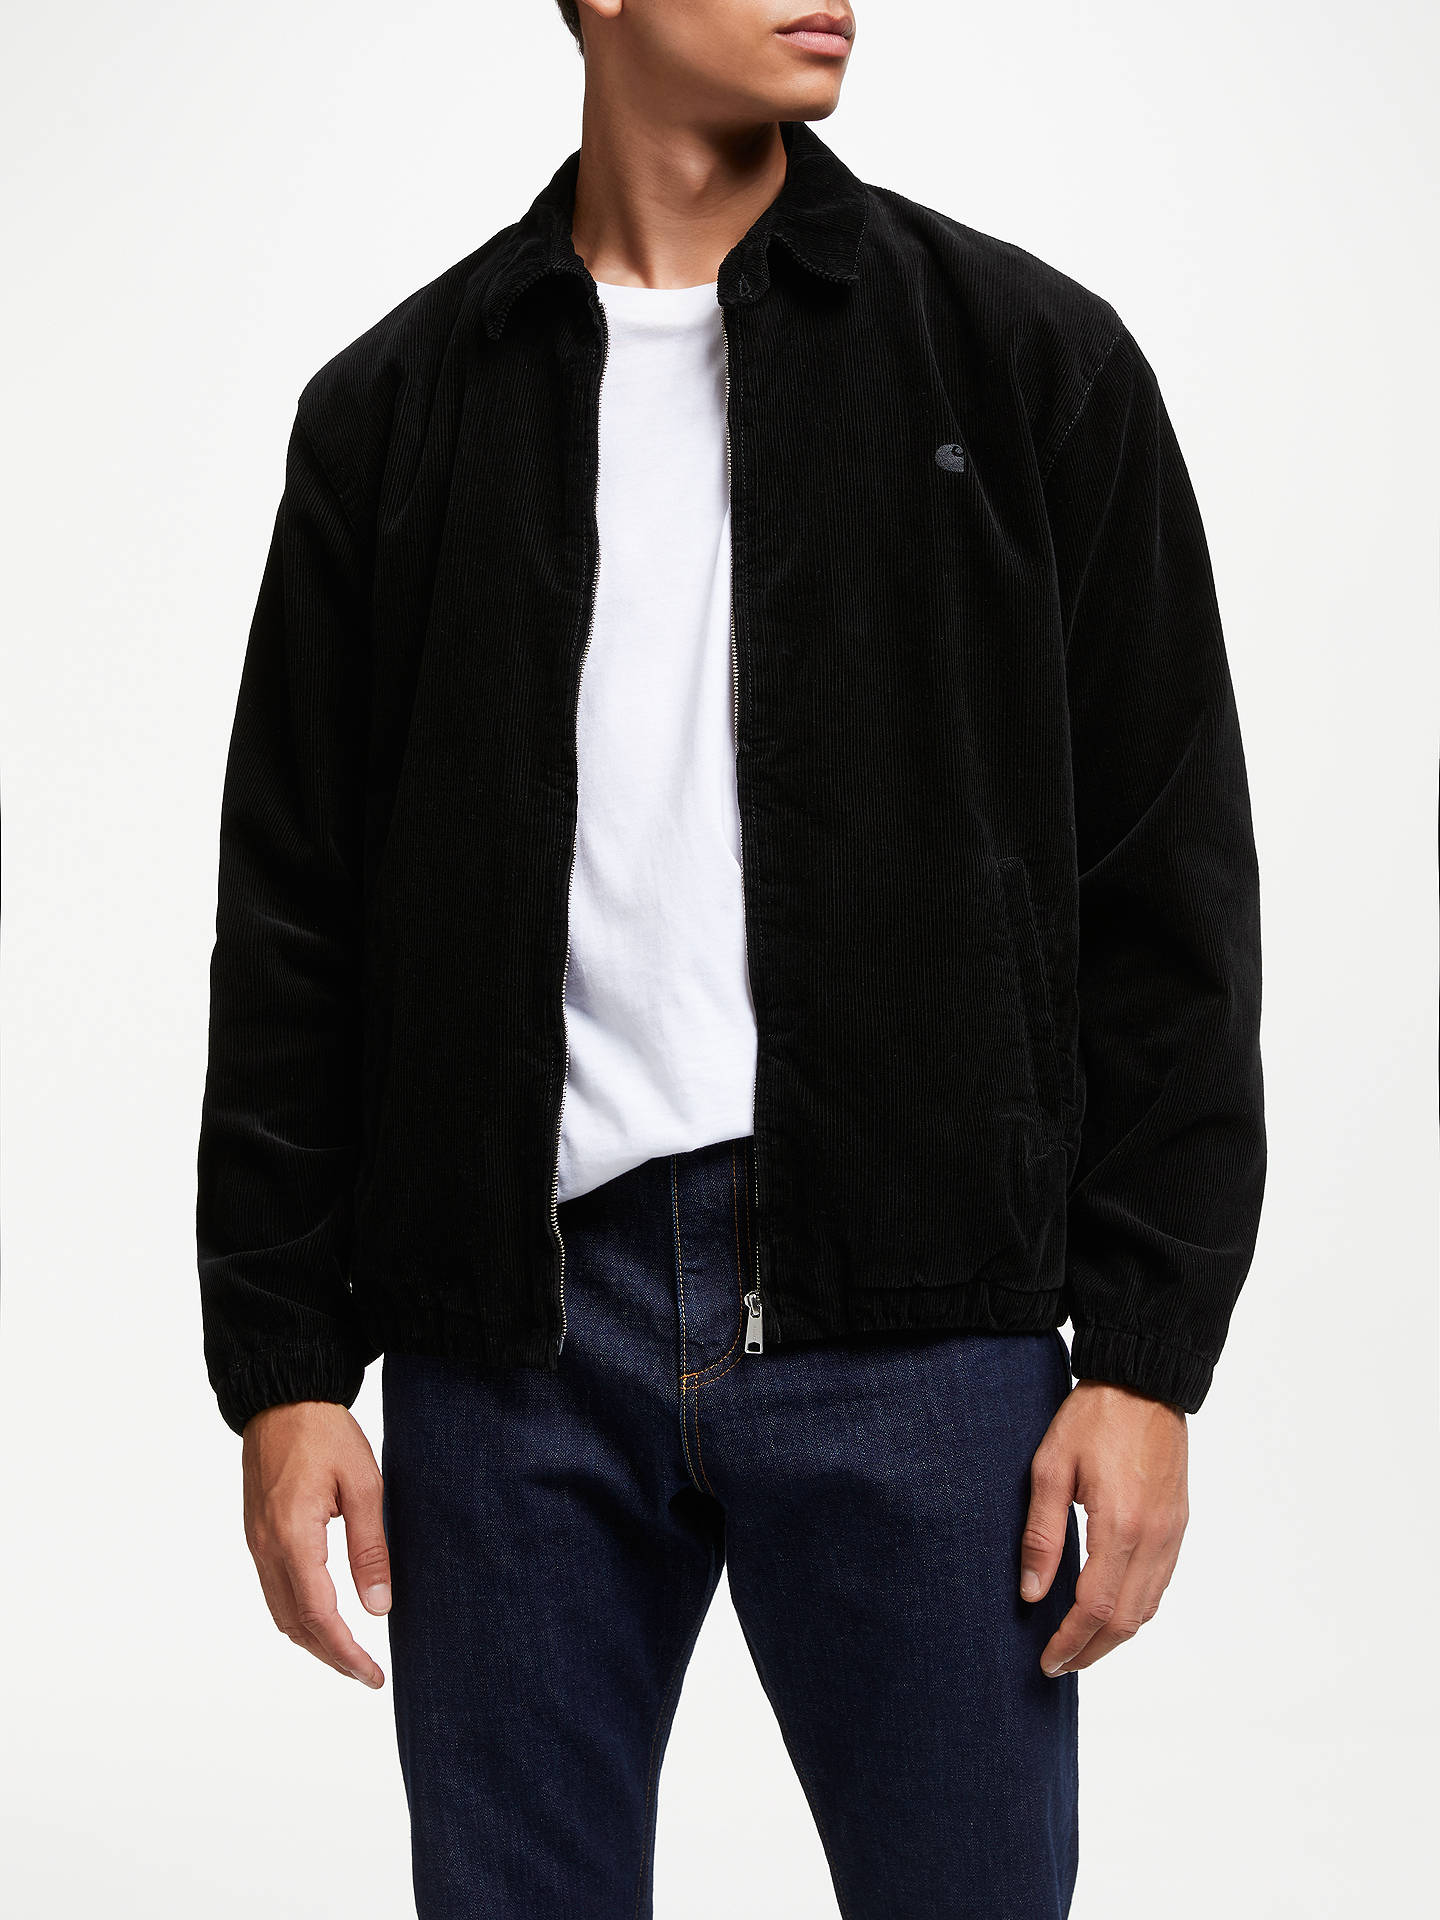 BuyCarhartt WIP Madison Cord Collared Jacket, Black, XL Online at johnlewis.com